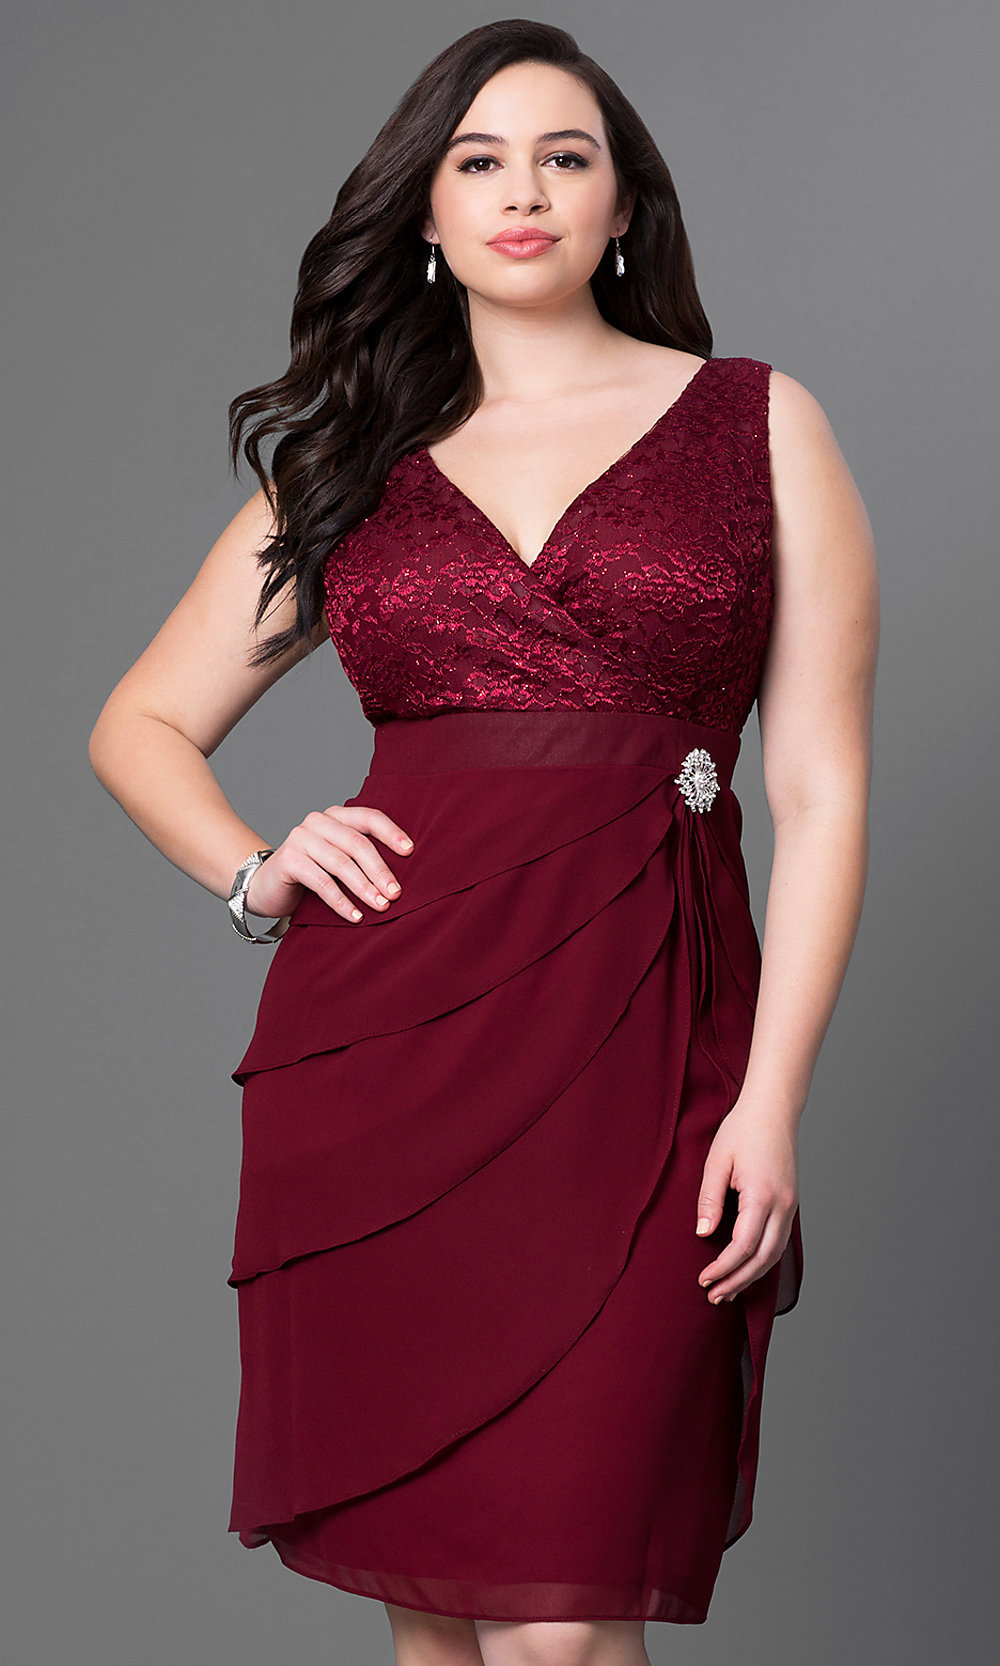 Burgundy Red Plus-Size Knee-Length Dress - PromGirl